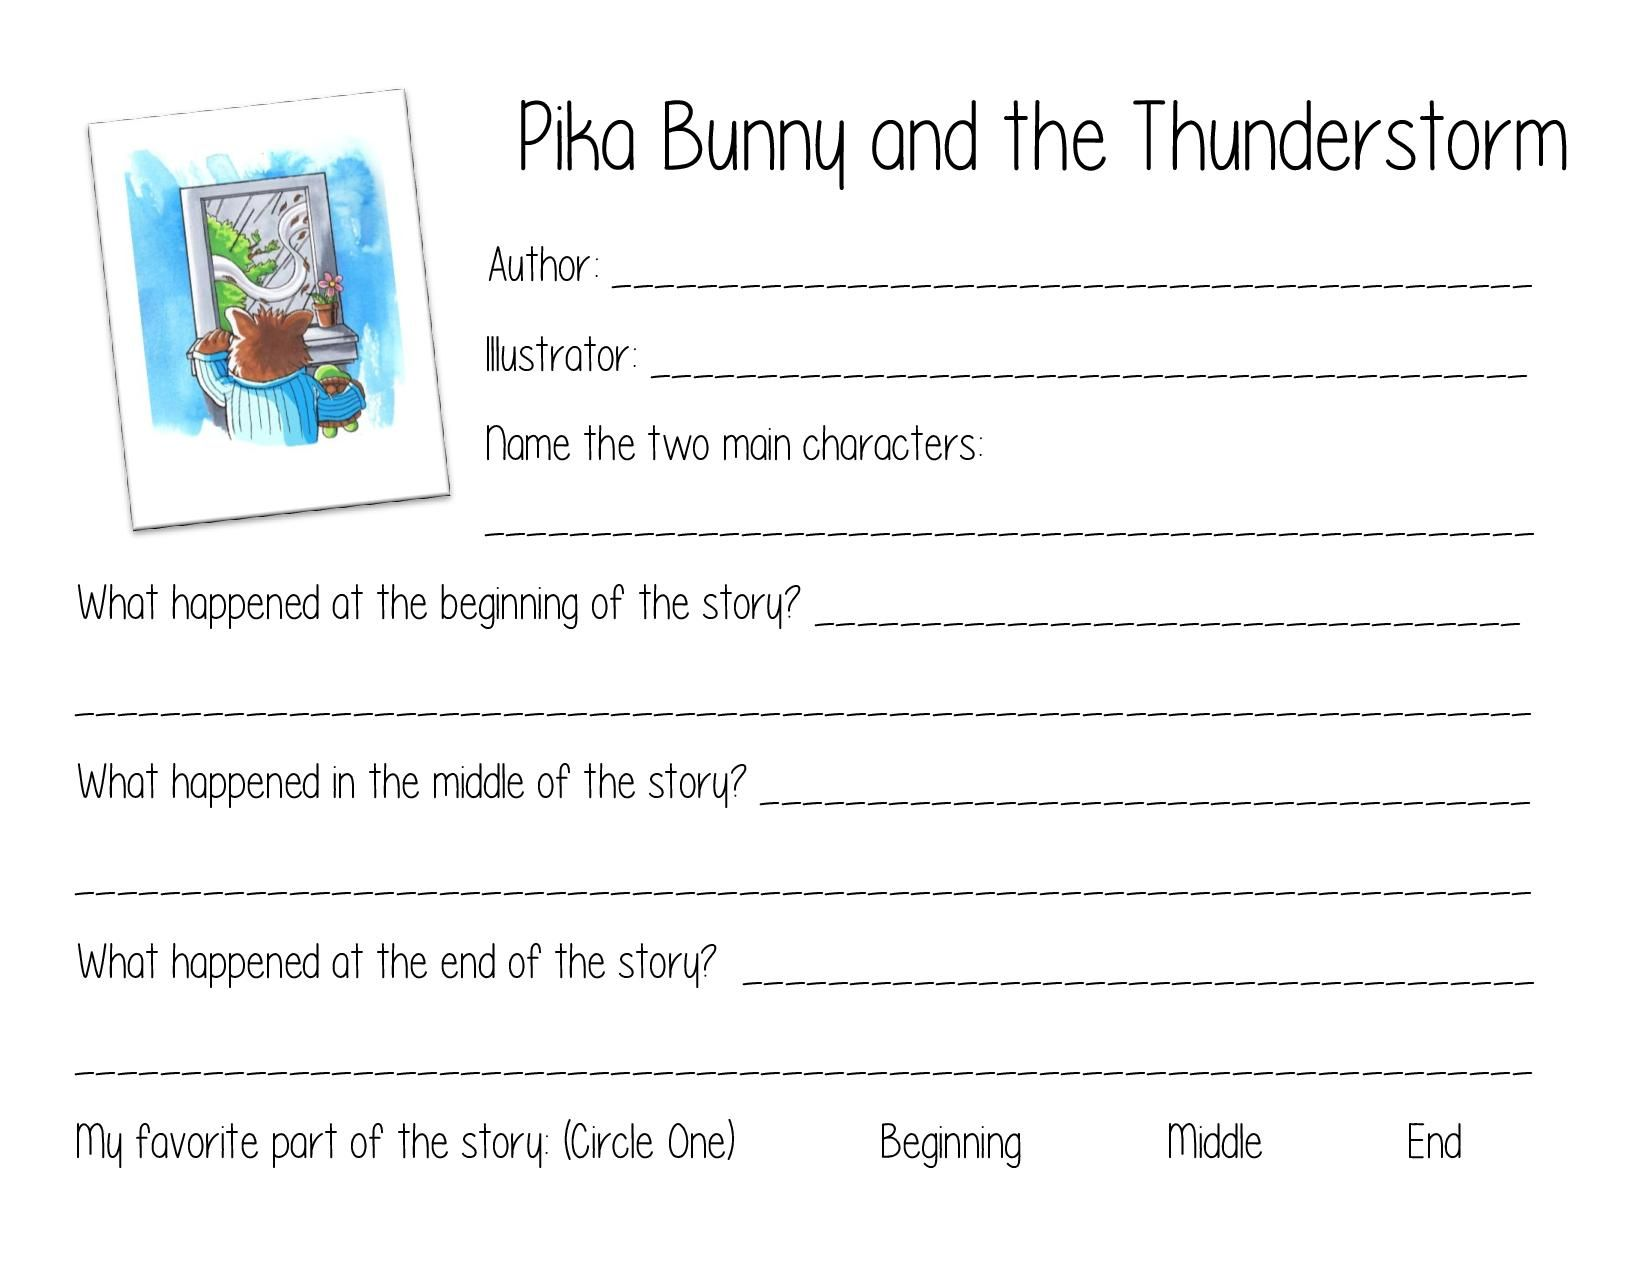 Free Worksheet For Pika Bunny And The Thunderstorm